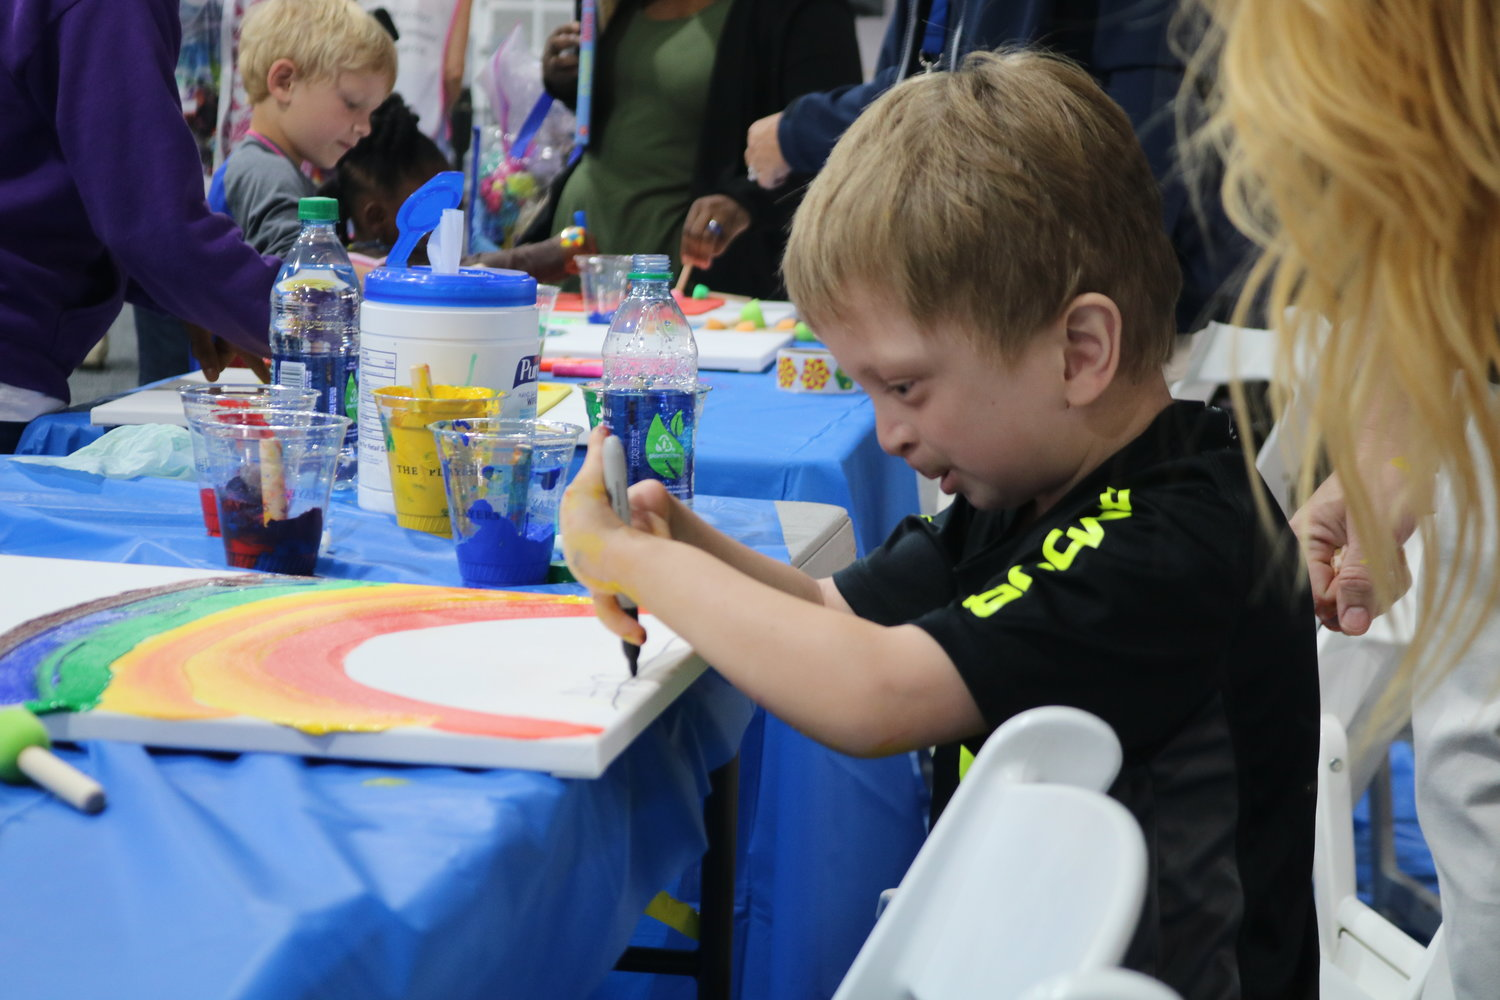 A kid at the event enjoys painting at an arts and crafts station.